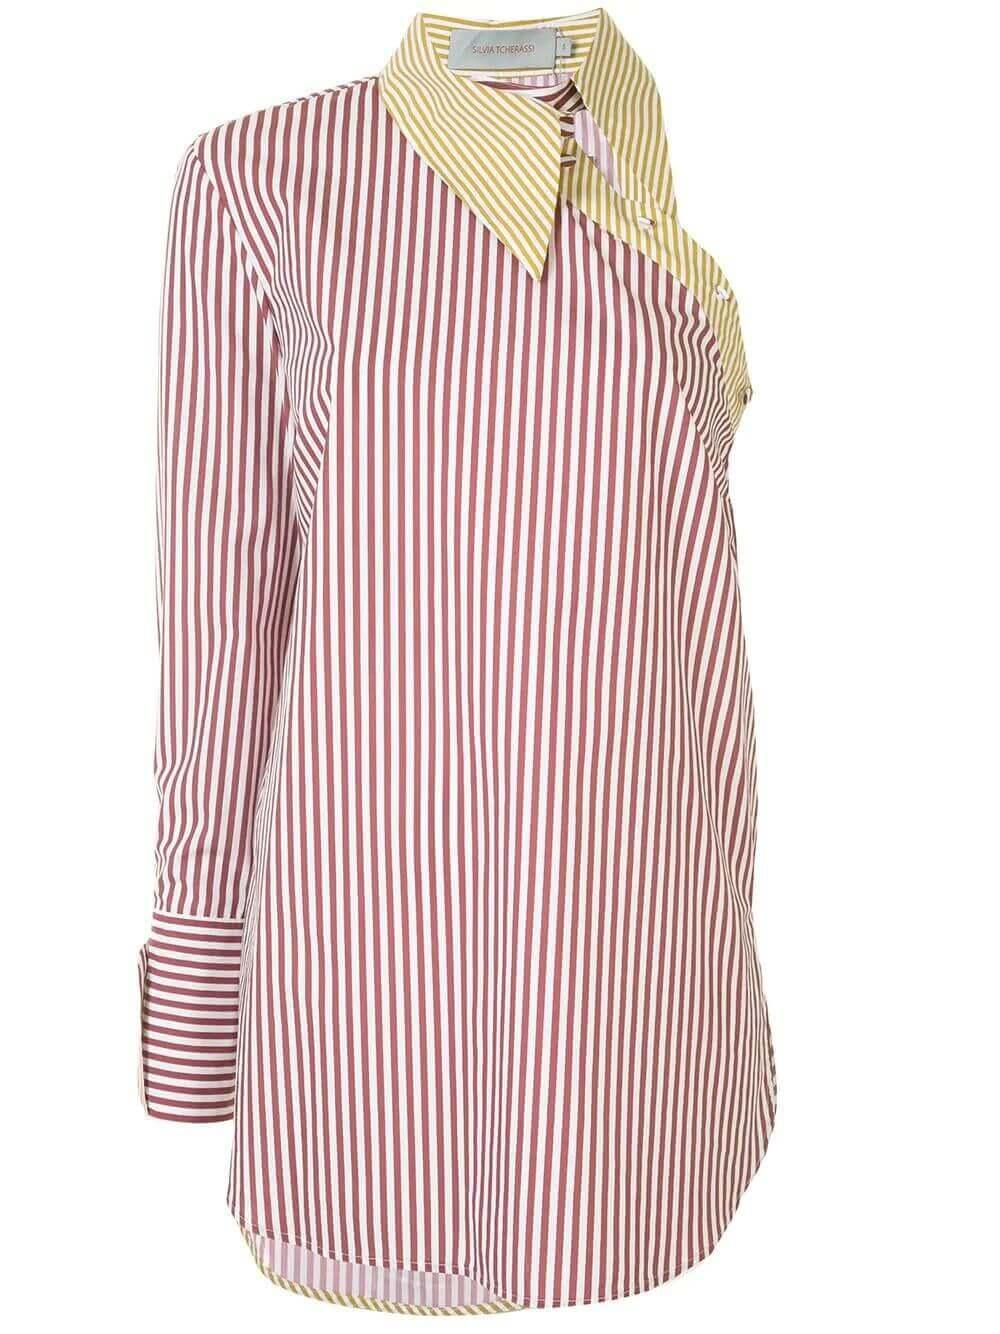 Tania One Shoulder Stripe Shirt Item # TANIA-SHIRT